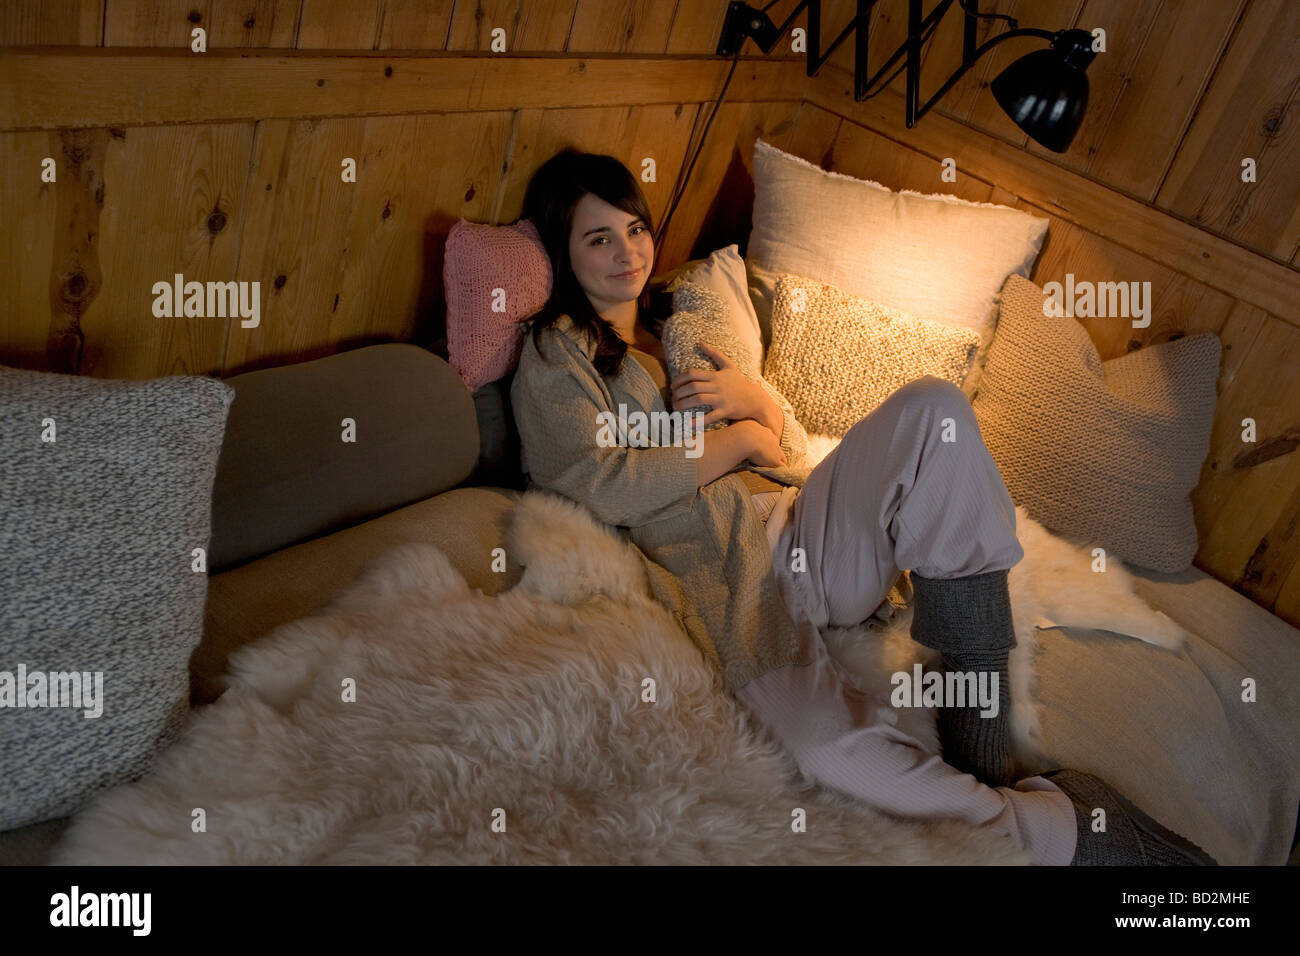 Young woman relaxing in bed - Stock Image